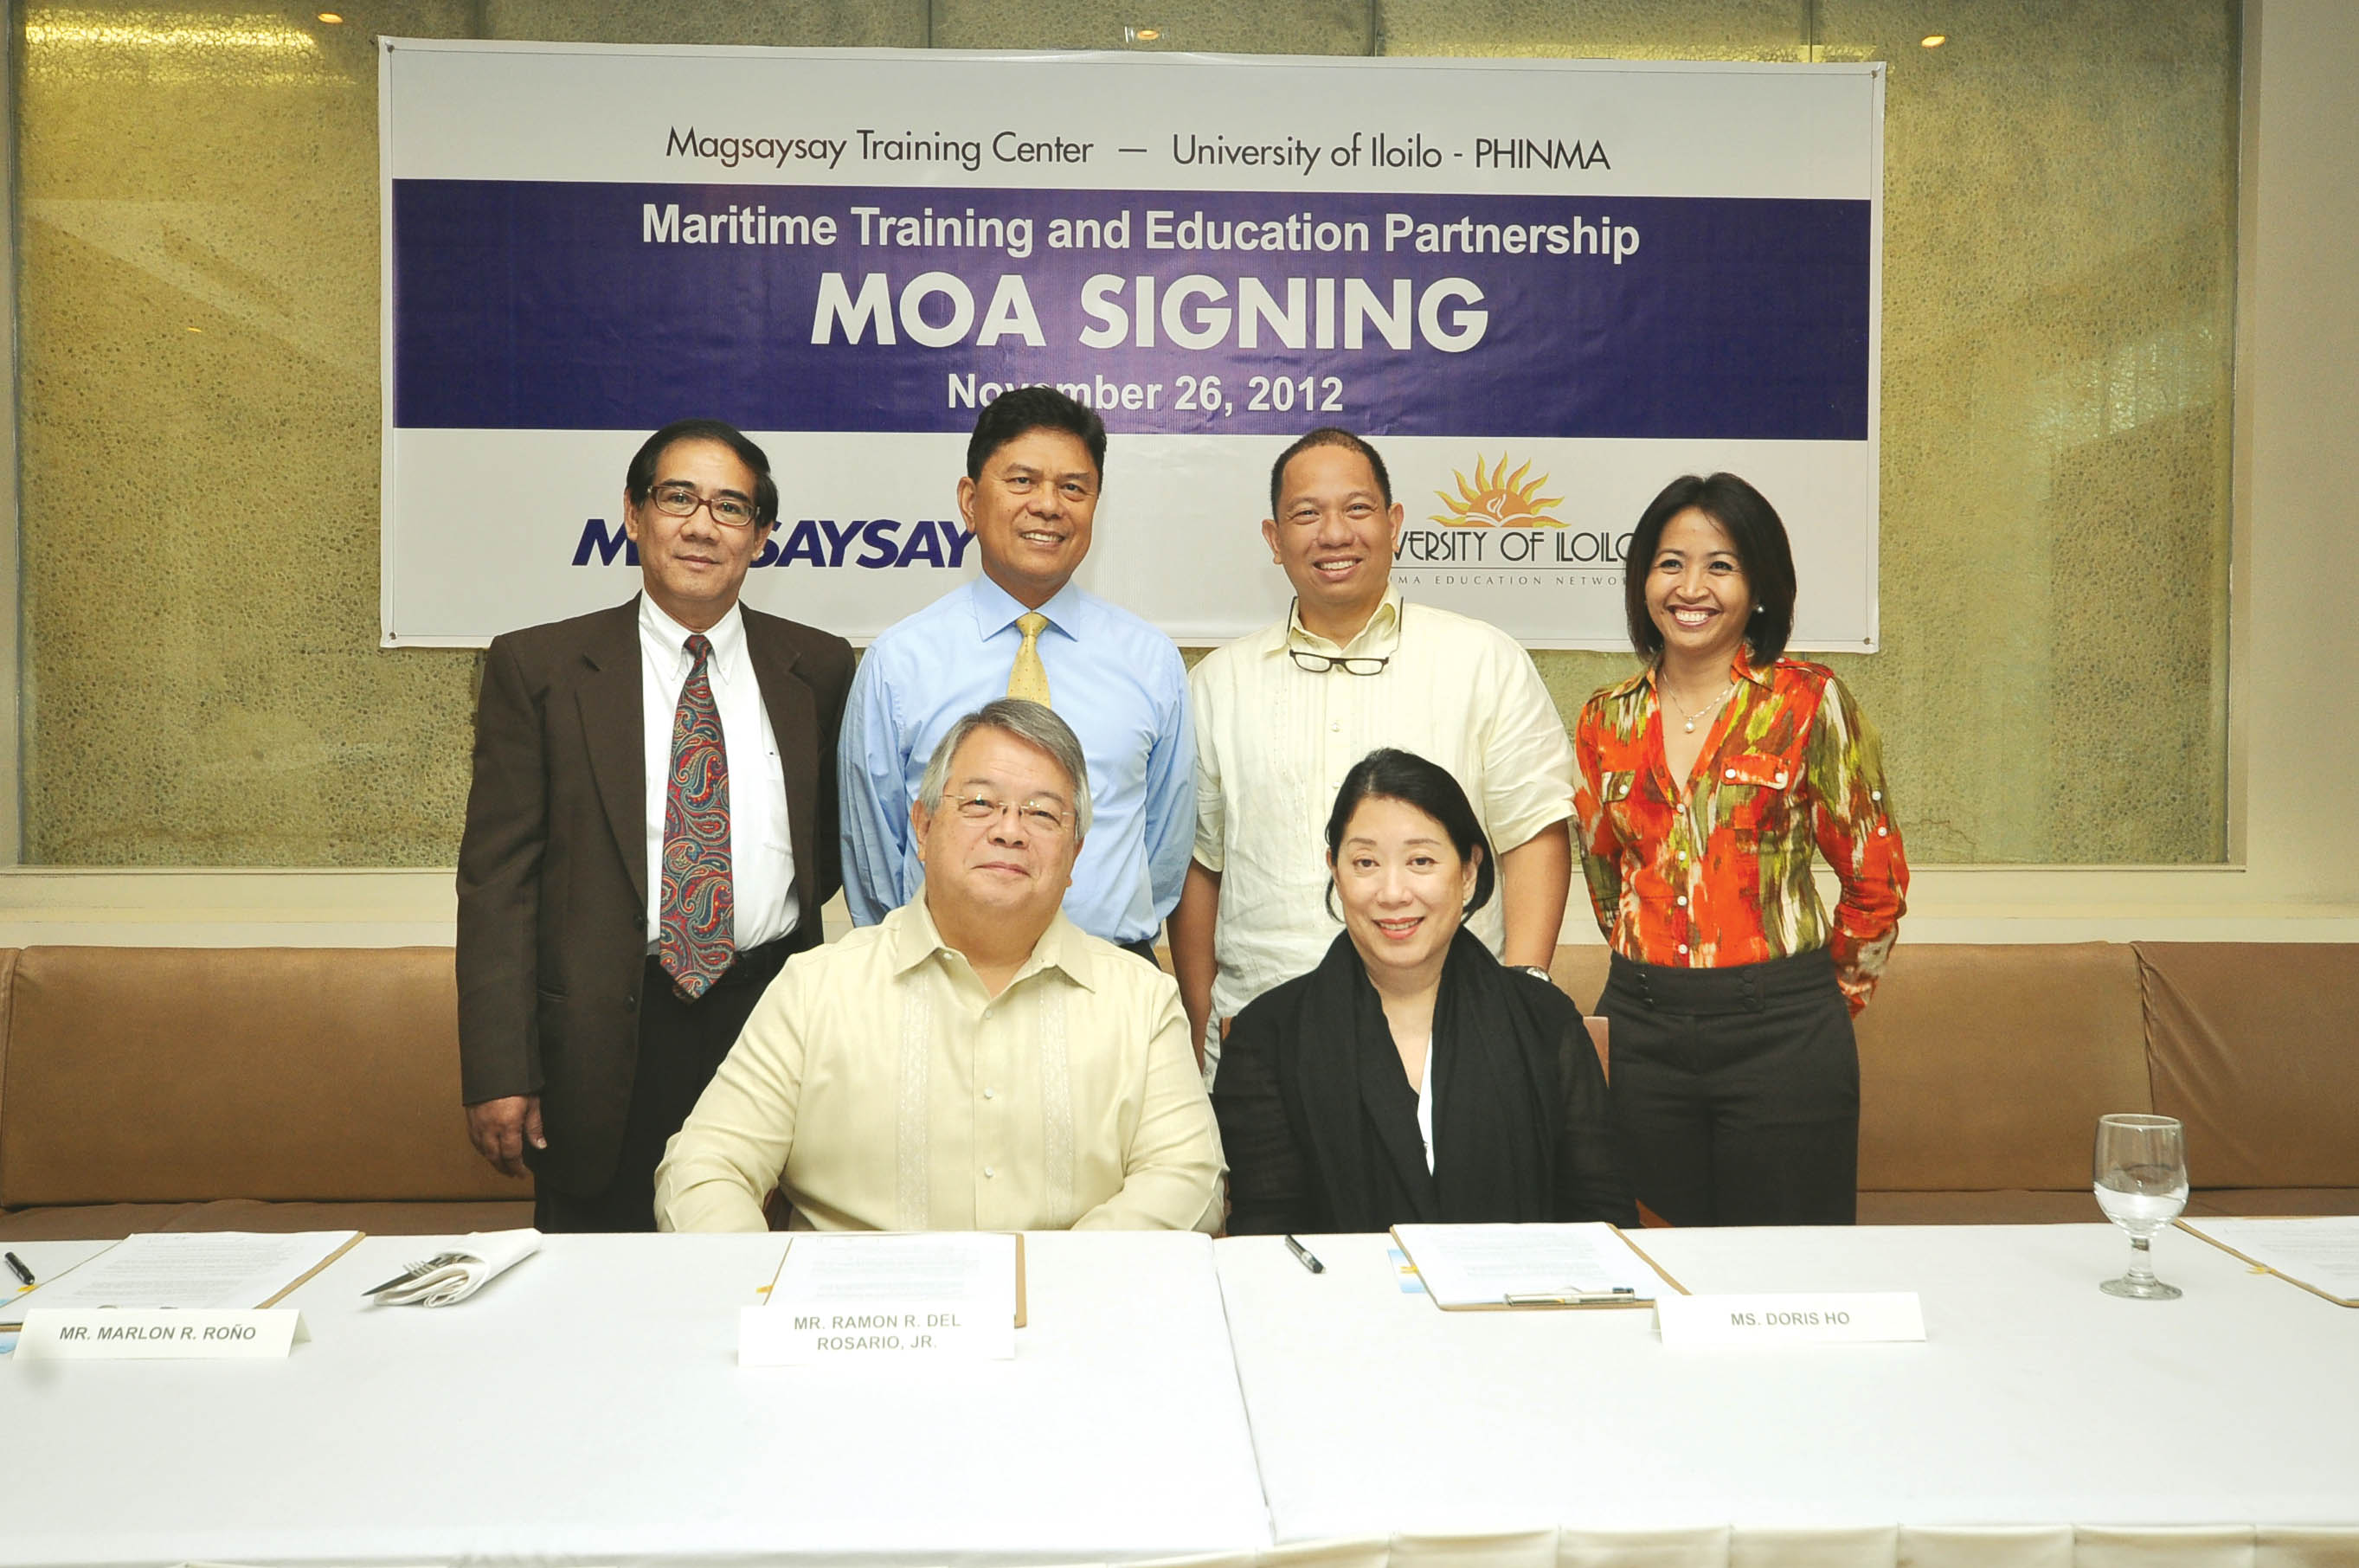 (Standing L-R) Mr. Romeo S. Piccio, VP/Head of Operations of Magsaysay Training Center; Mr. Marlon R. Roño, President of Magsaysay People Resources; Dr. Chito B. Salazar, President of PHINMA Education Network and UI-PHINMA; Ms. Jeanette B. Fabul, COO of U